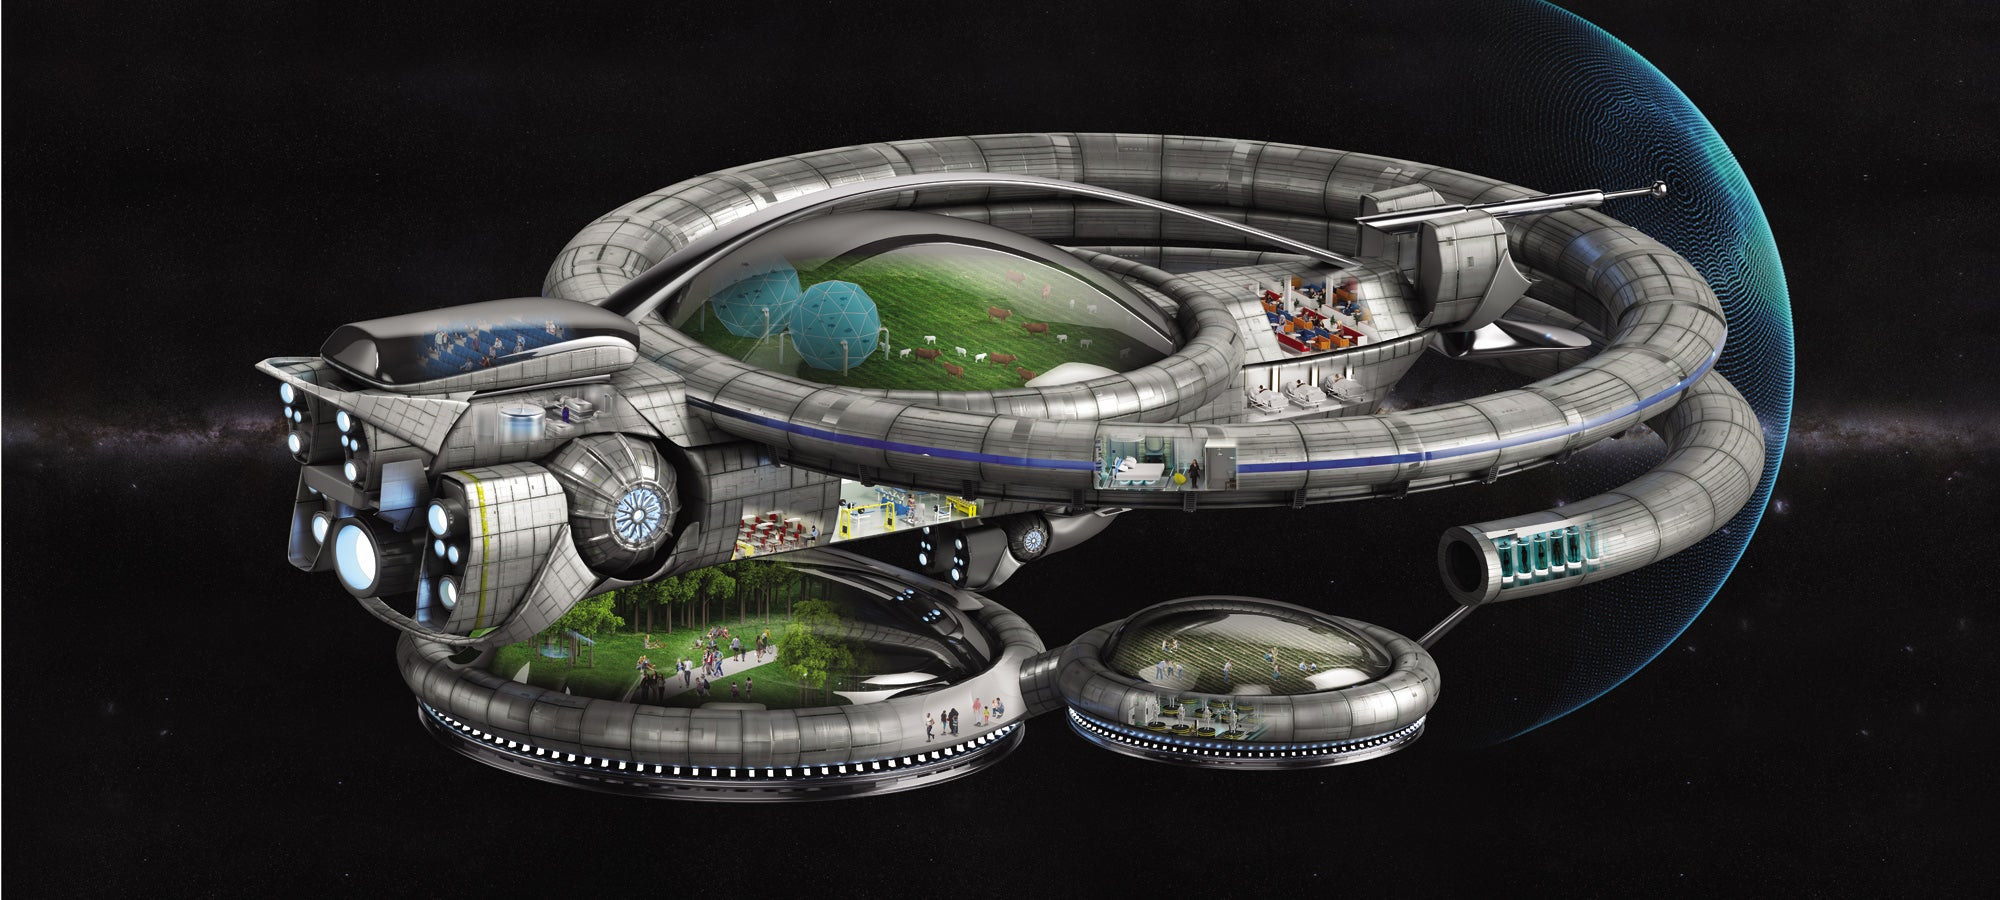 We could move to another planet with a spaceship like this